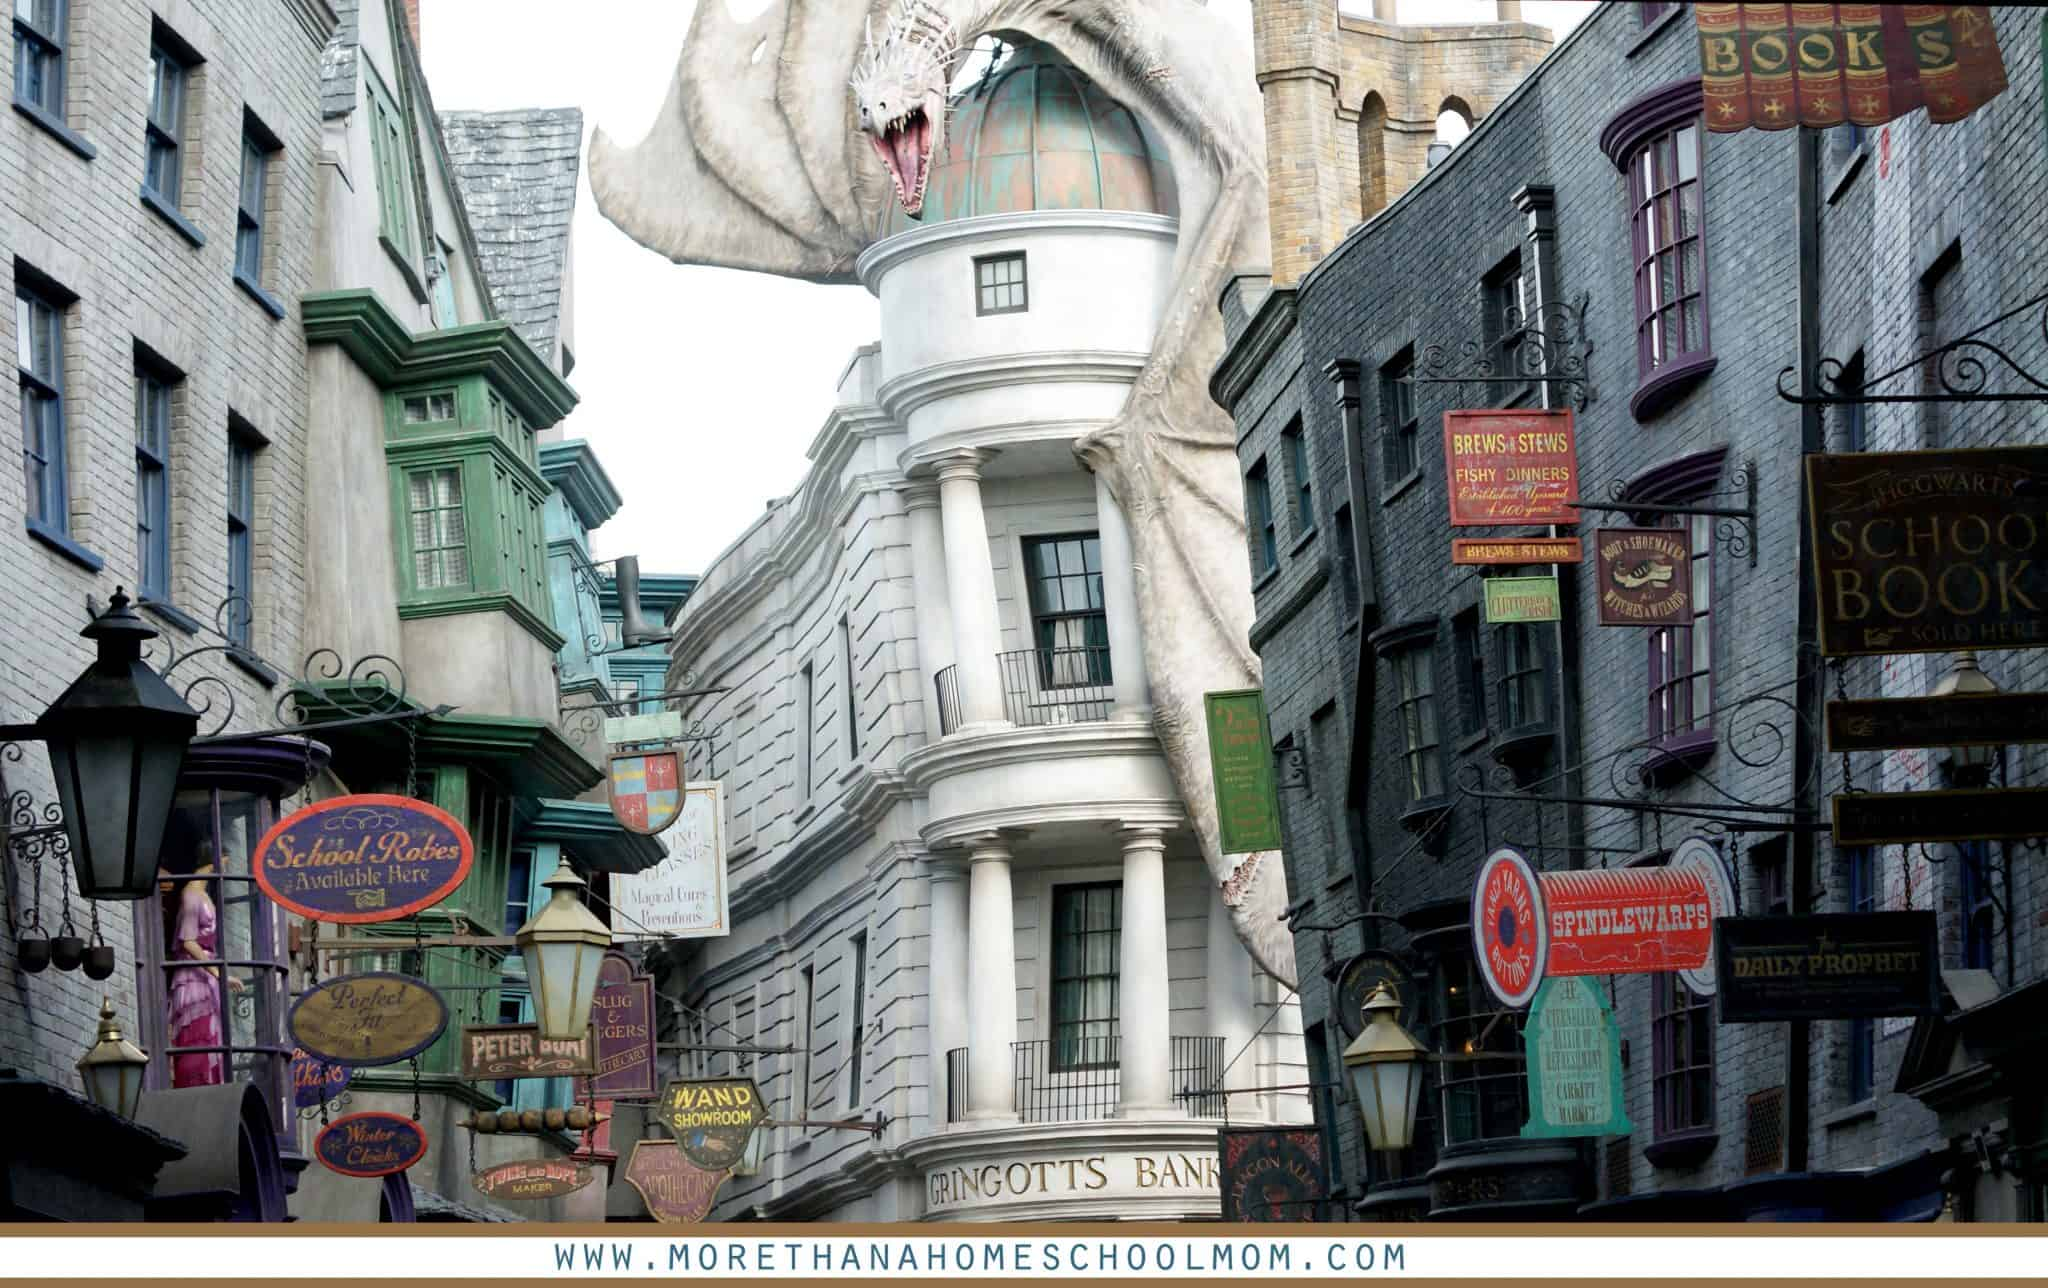 Intro to Diagon Alley with view of dragon on Gringotts bank - #UniversalStudios #DiagonAlley #Travel #Florida #orlando #Universal